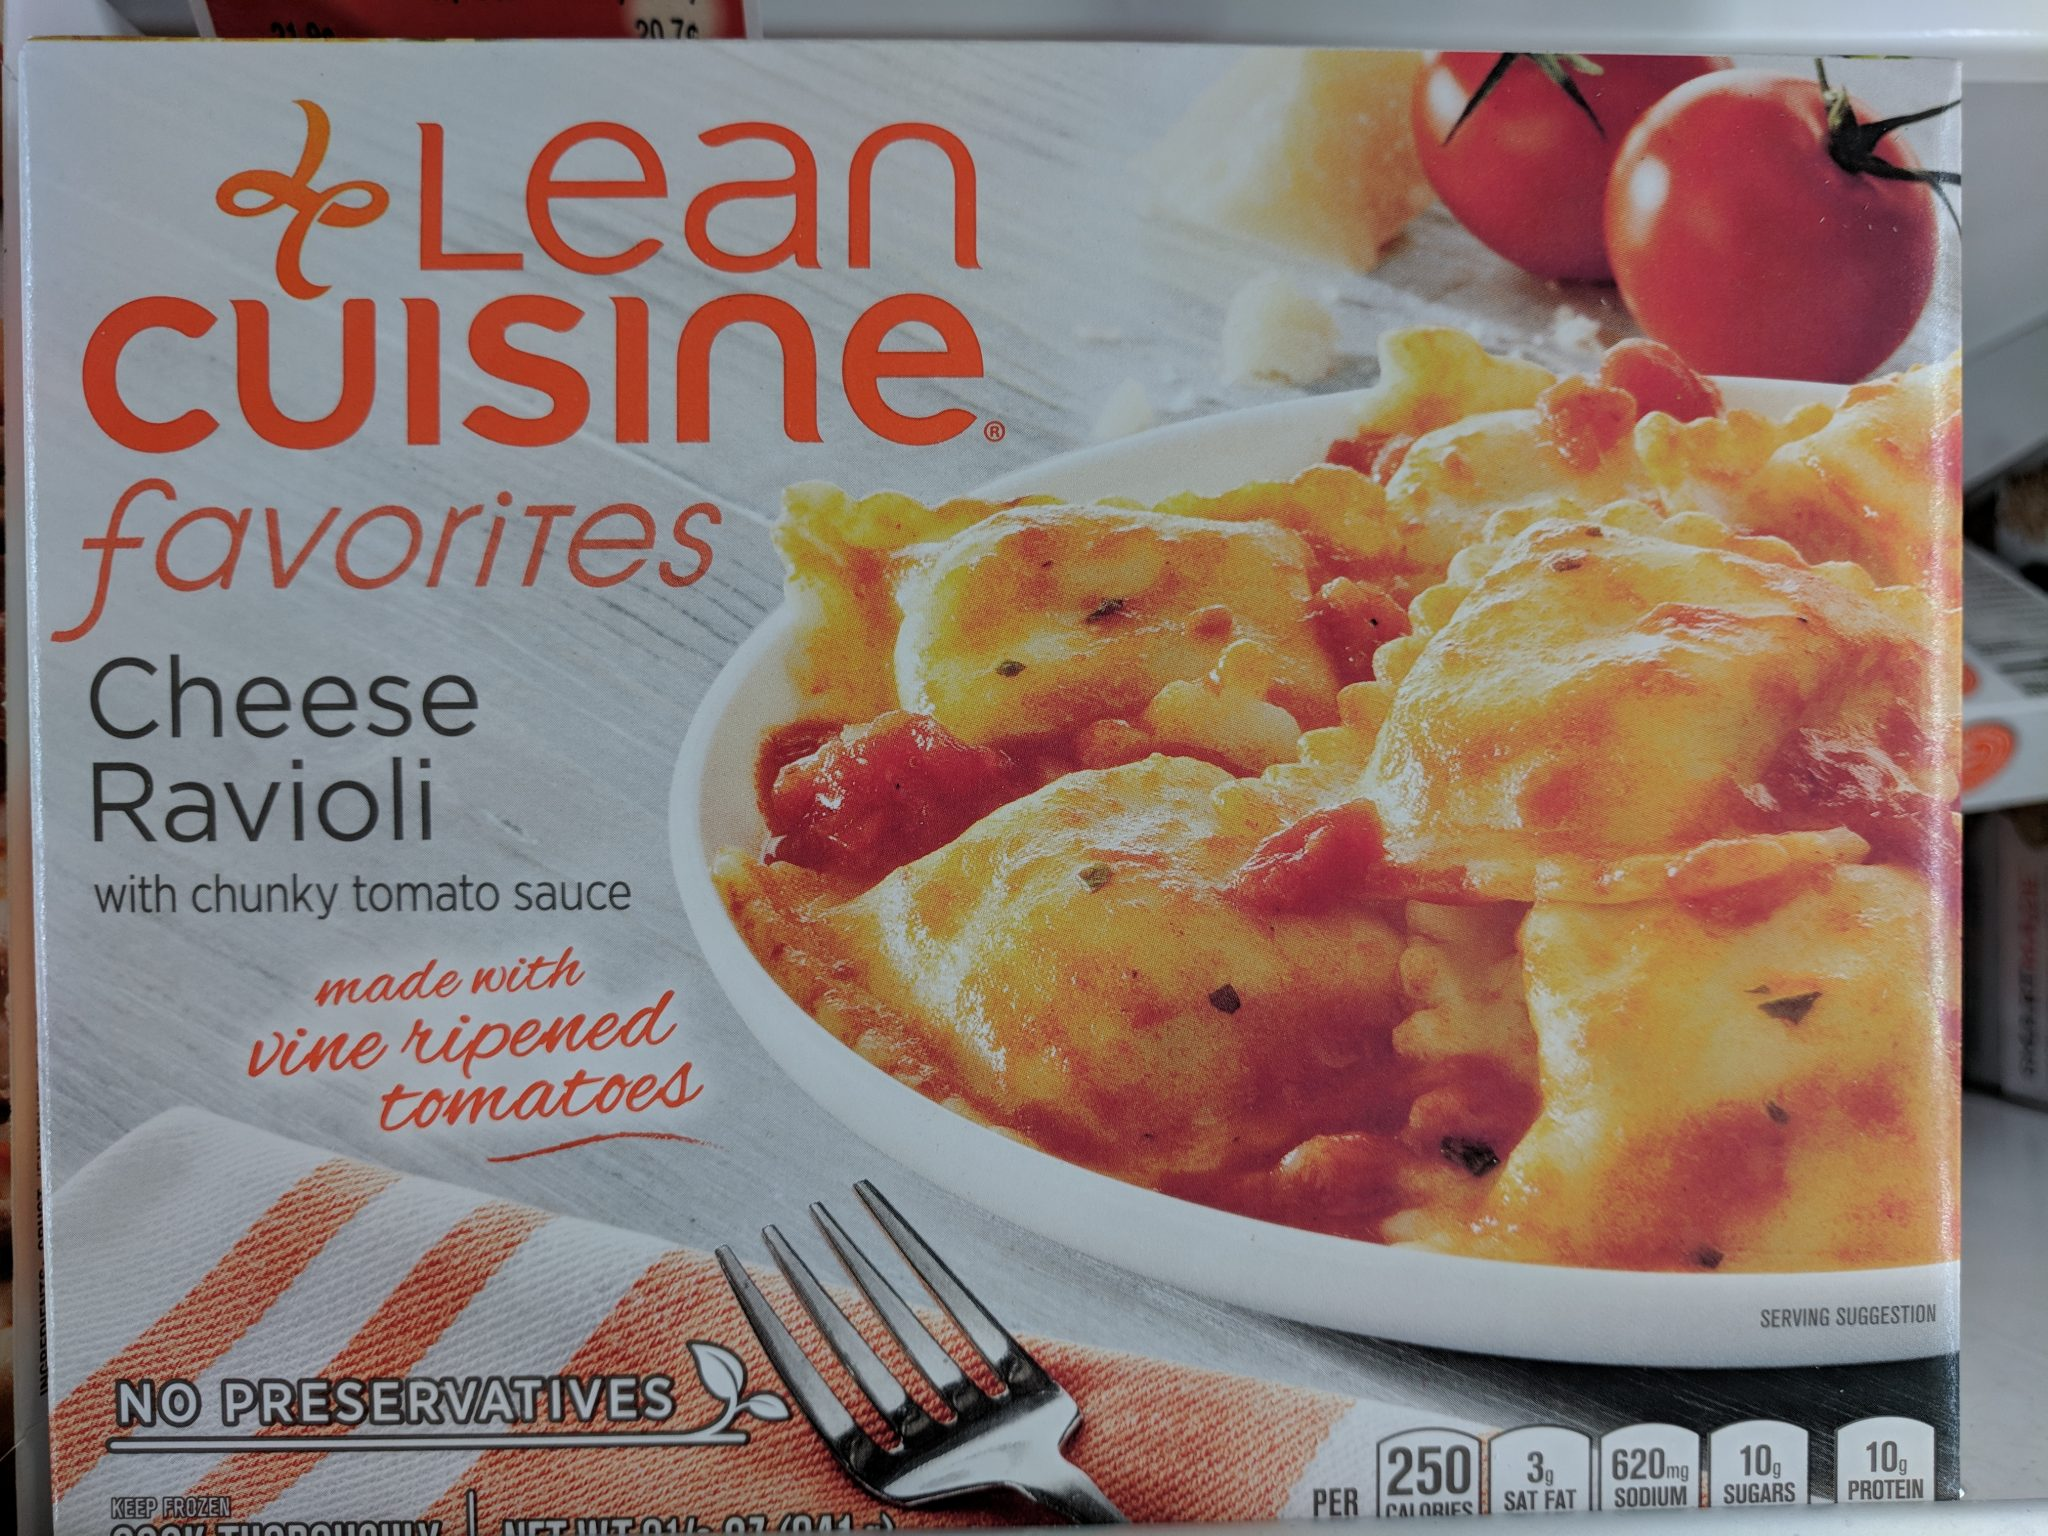 HOT DEAL!! Lean Cusine Frozen Meals ONLY $0.77 at King Soopers!!! No Coupons Needed!!